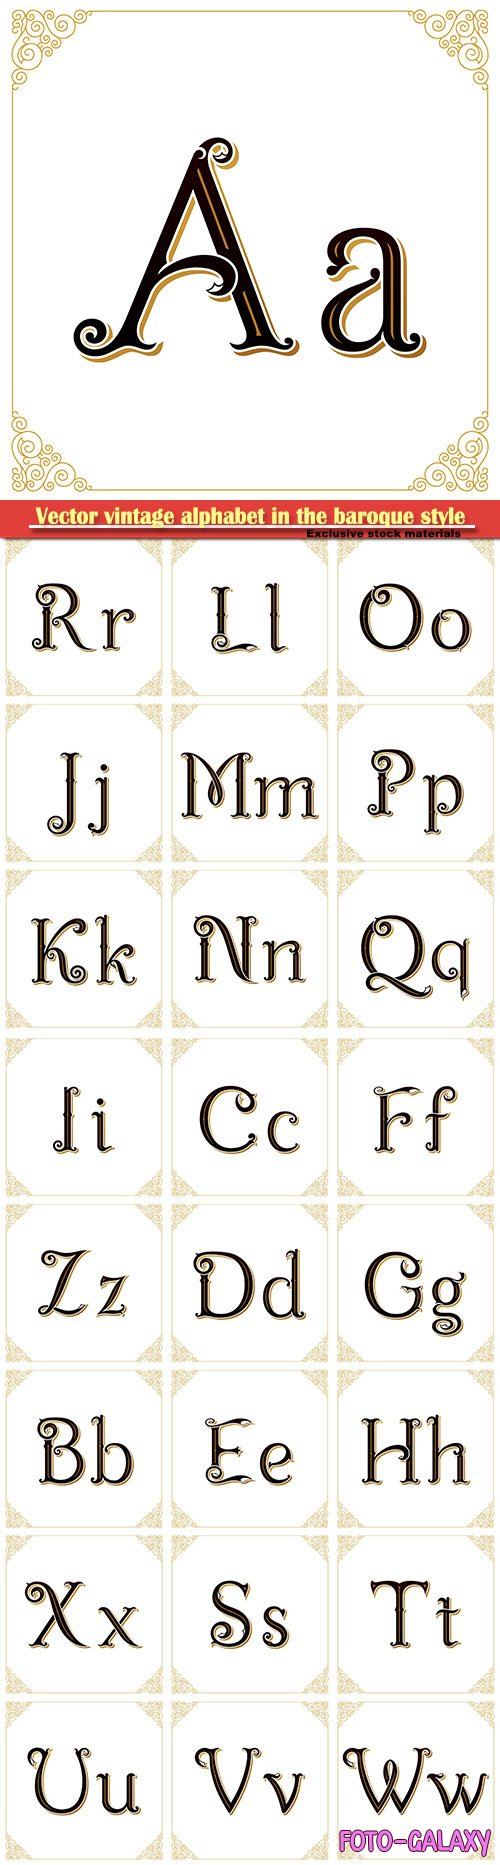 Vector vintage alphabet in the baroque style